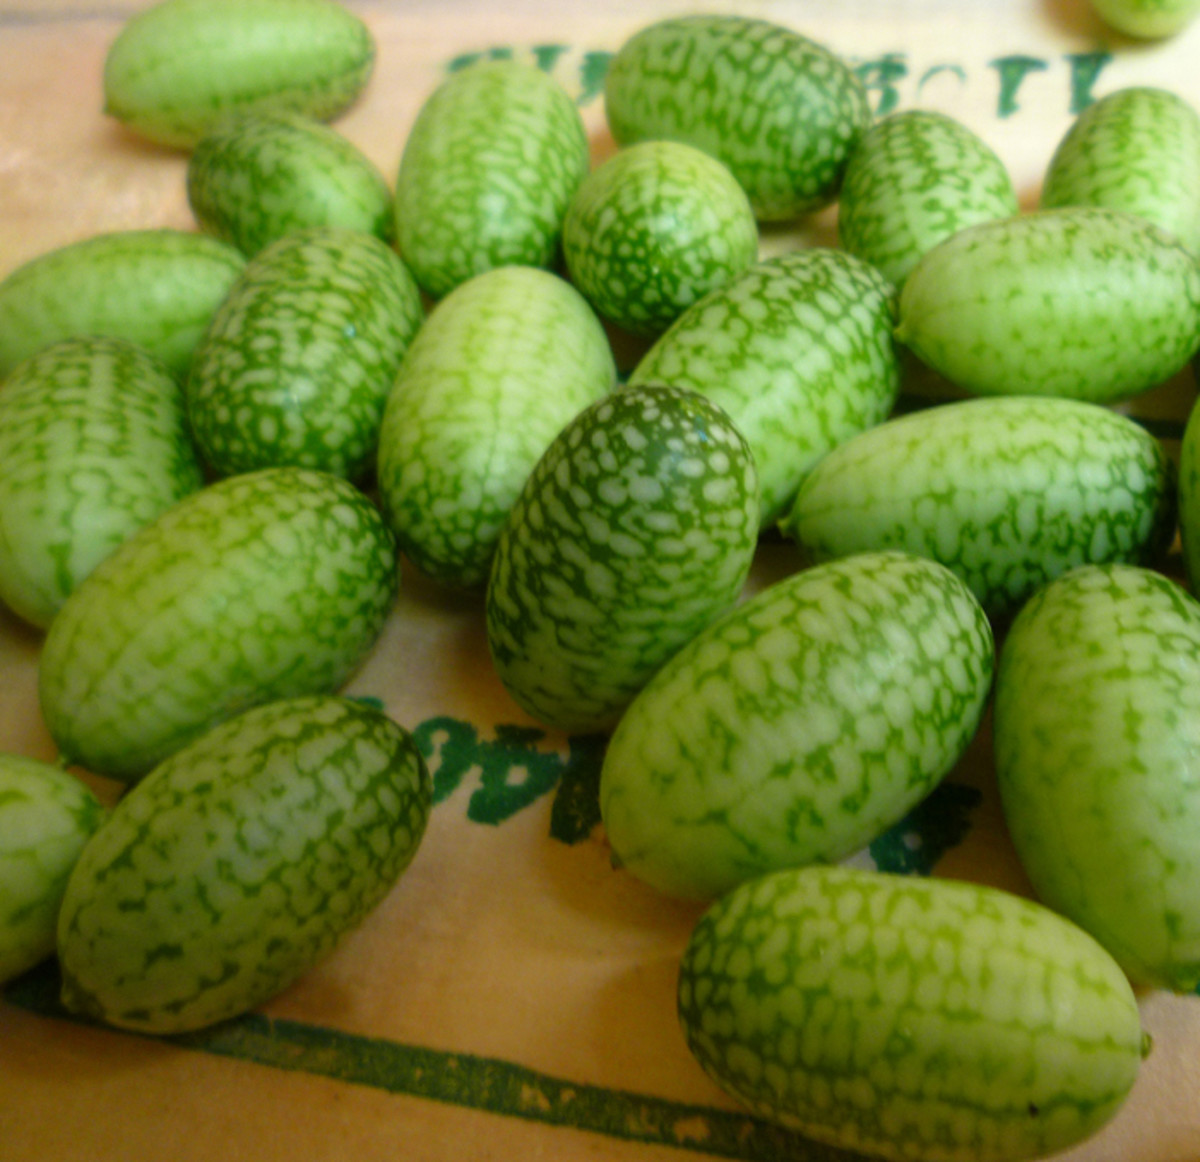 Mouse melons. Also known as Mexican sour gherkins or cucamelons.